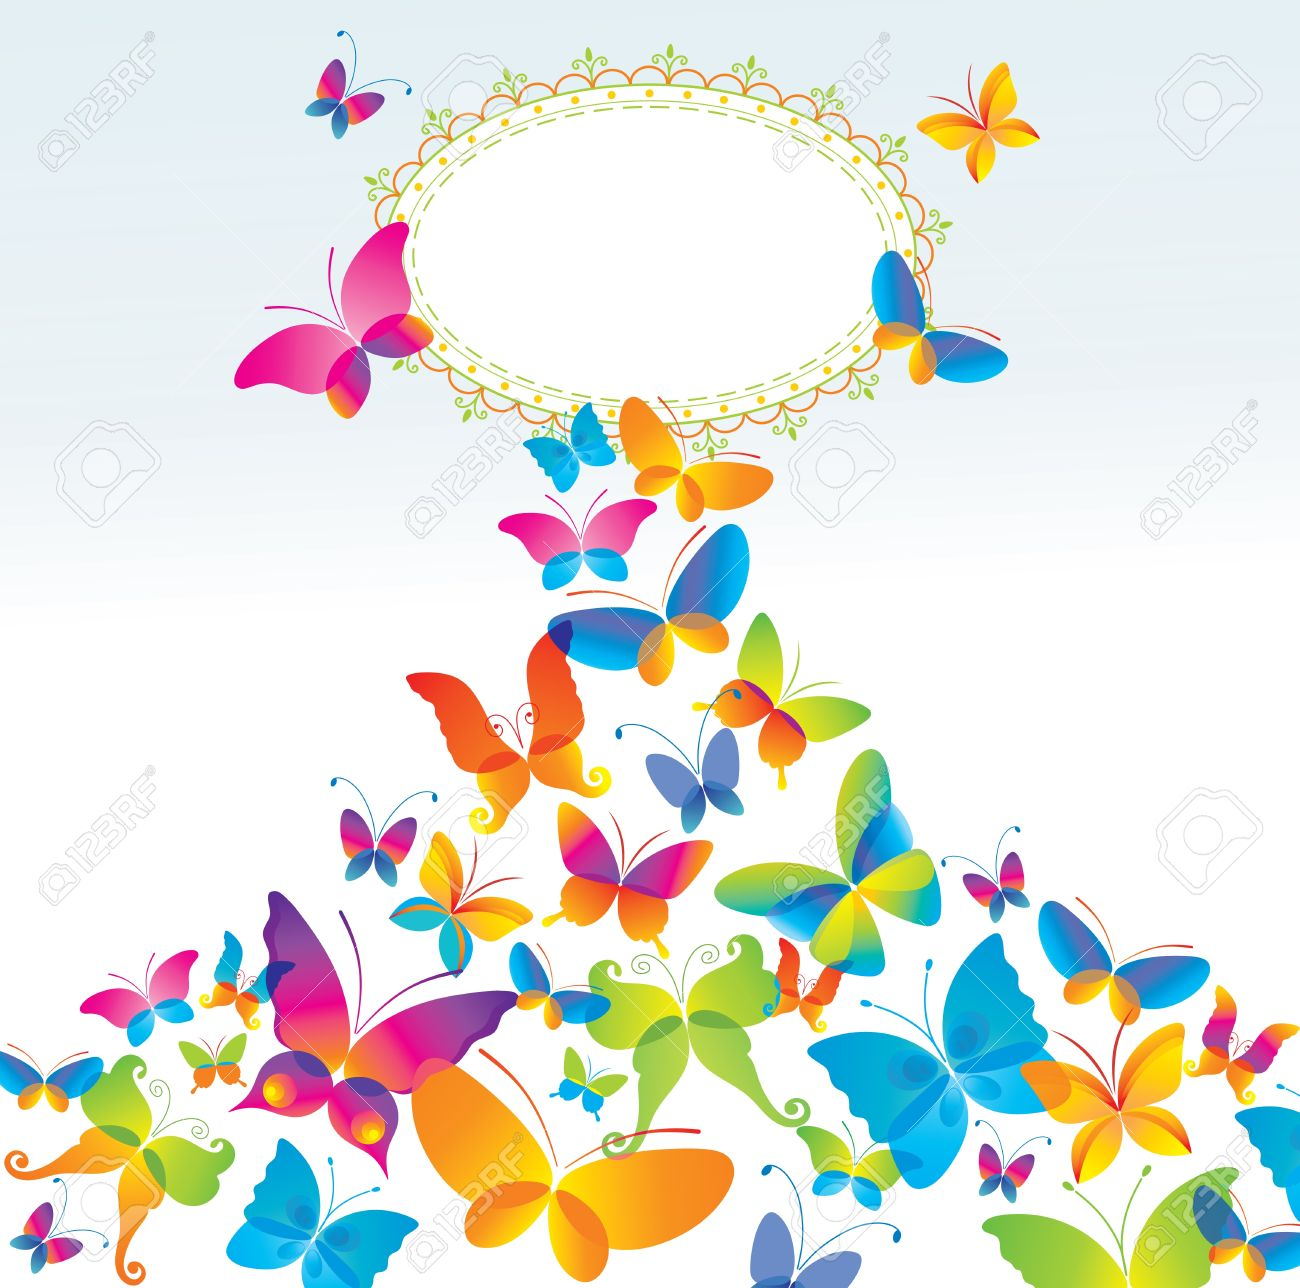 colorful background with butterfly royalty free cliparts vectors